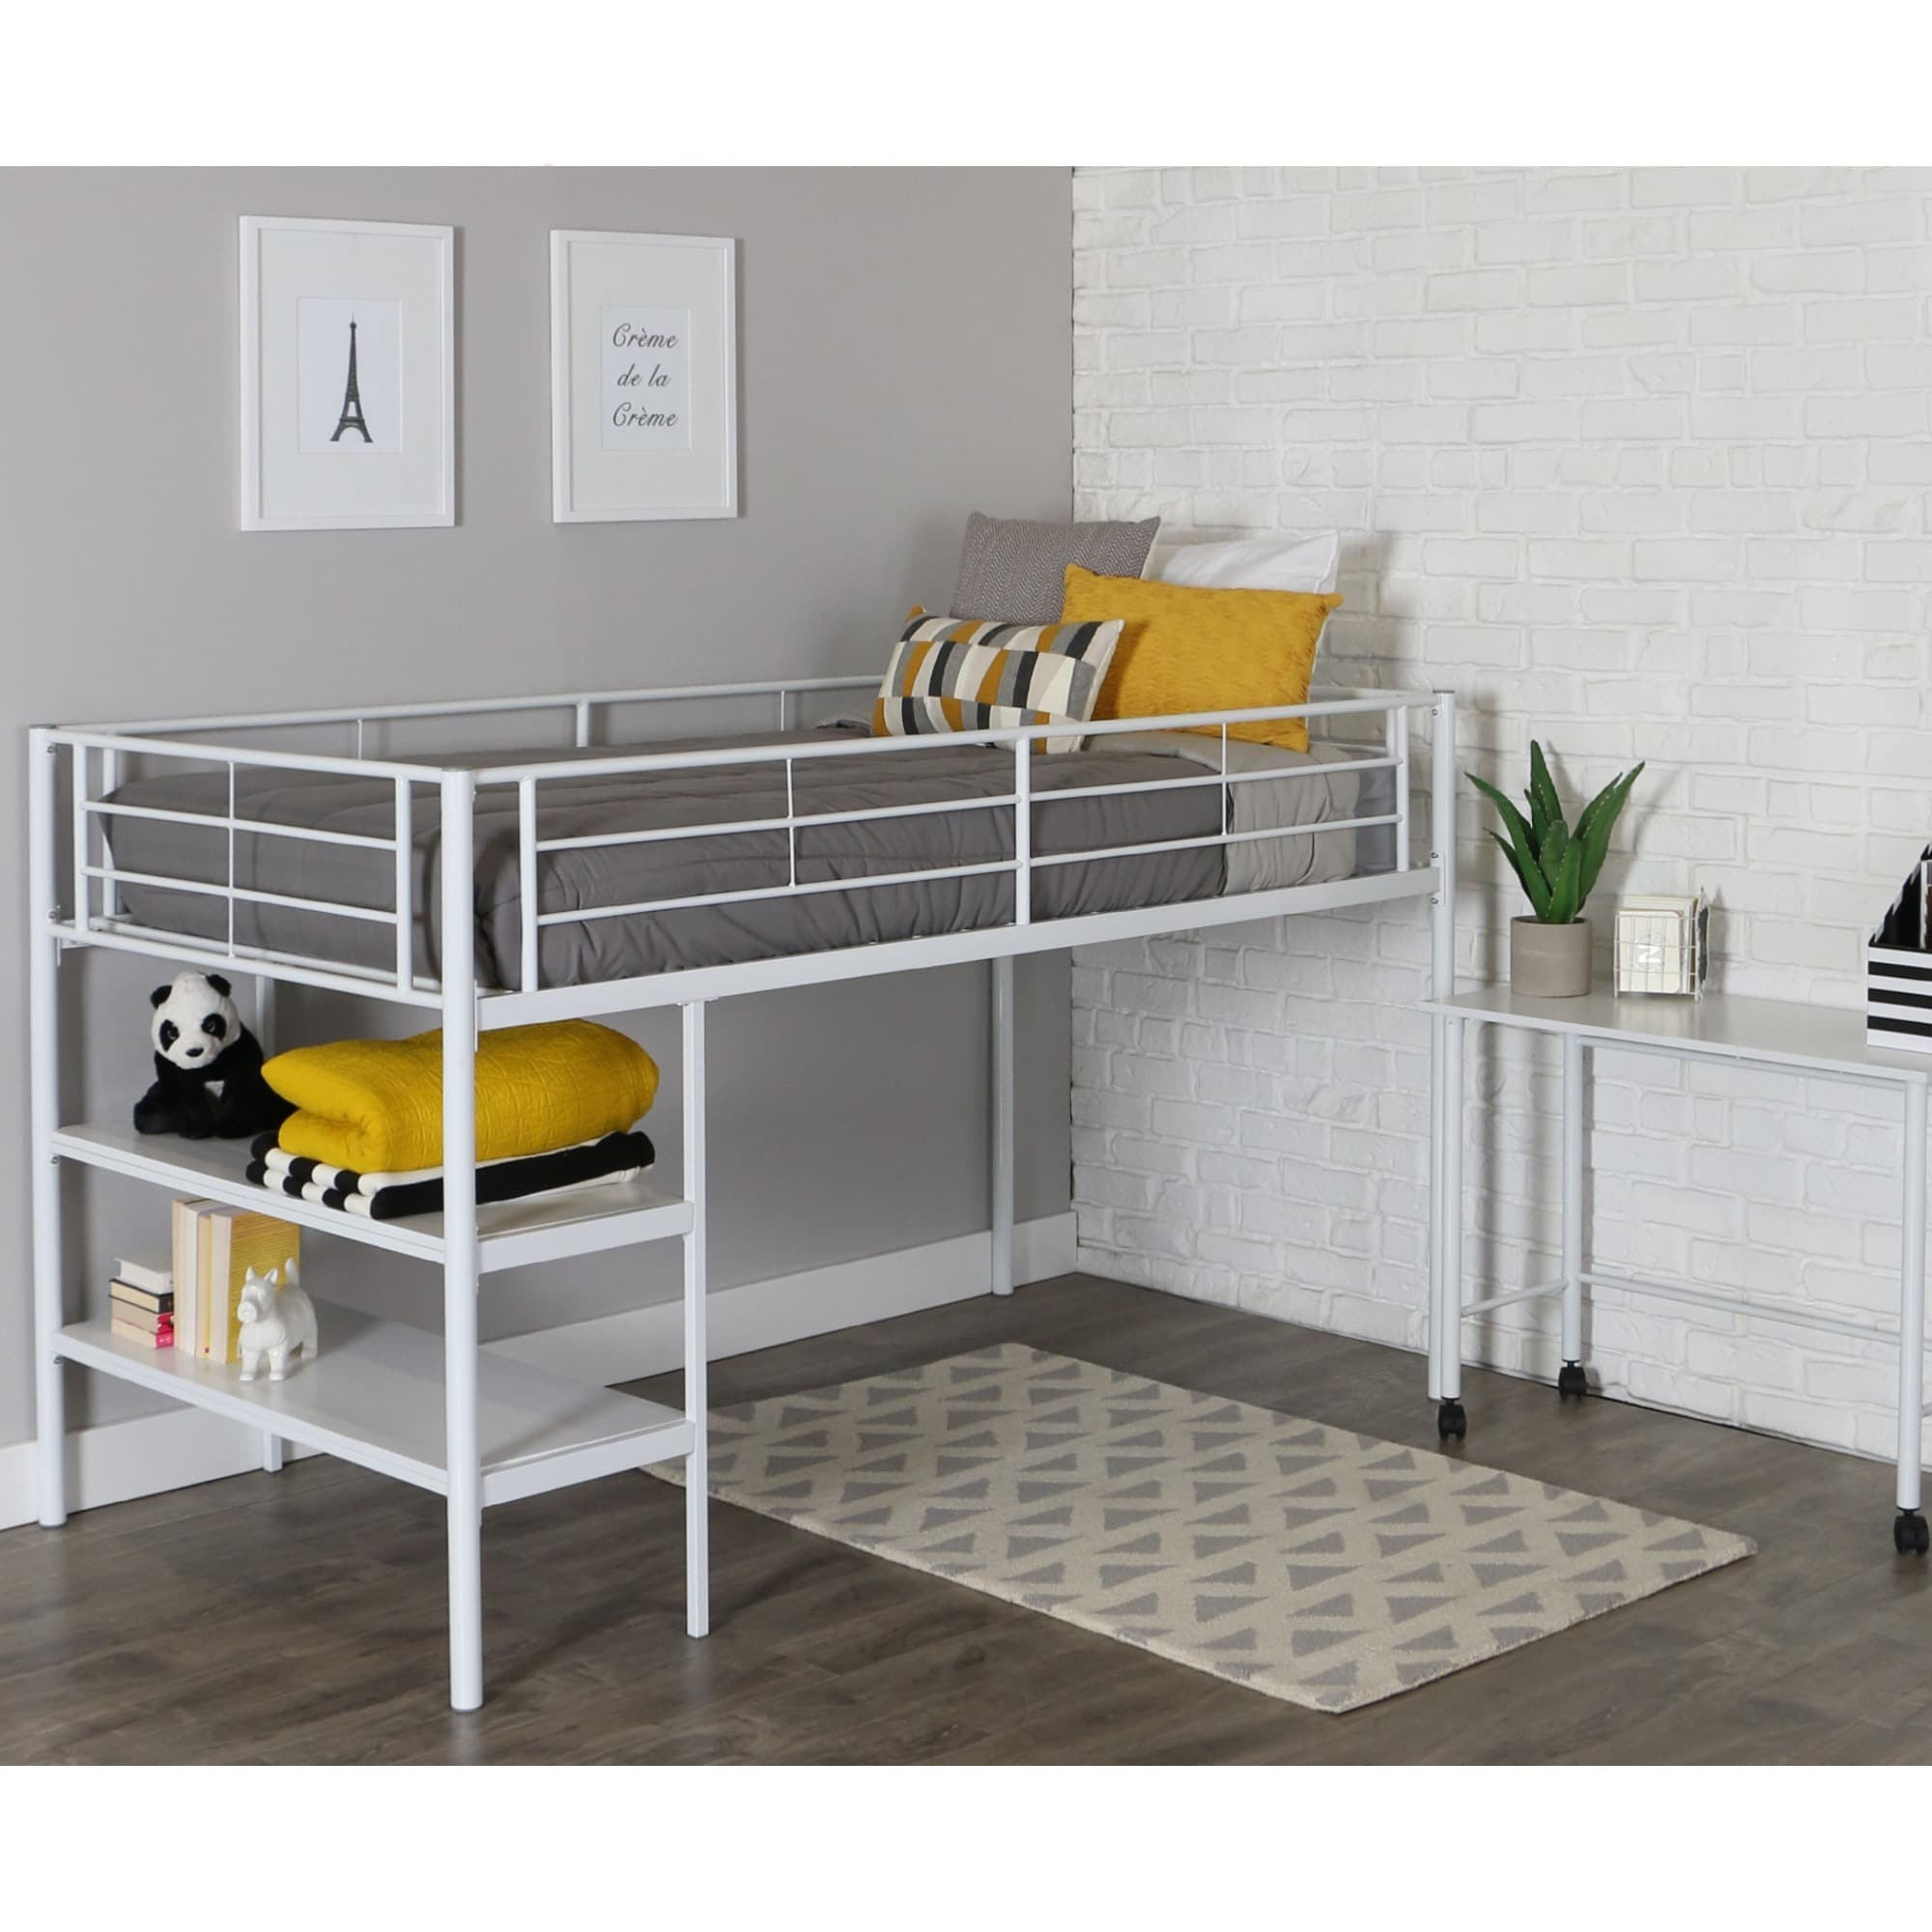 Twin Loft Bed.Taylor Olive Abner White Twin Loft Bed With Desk